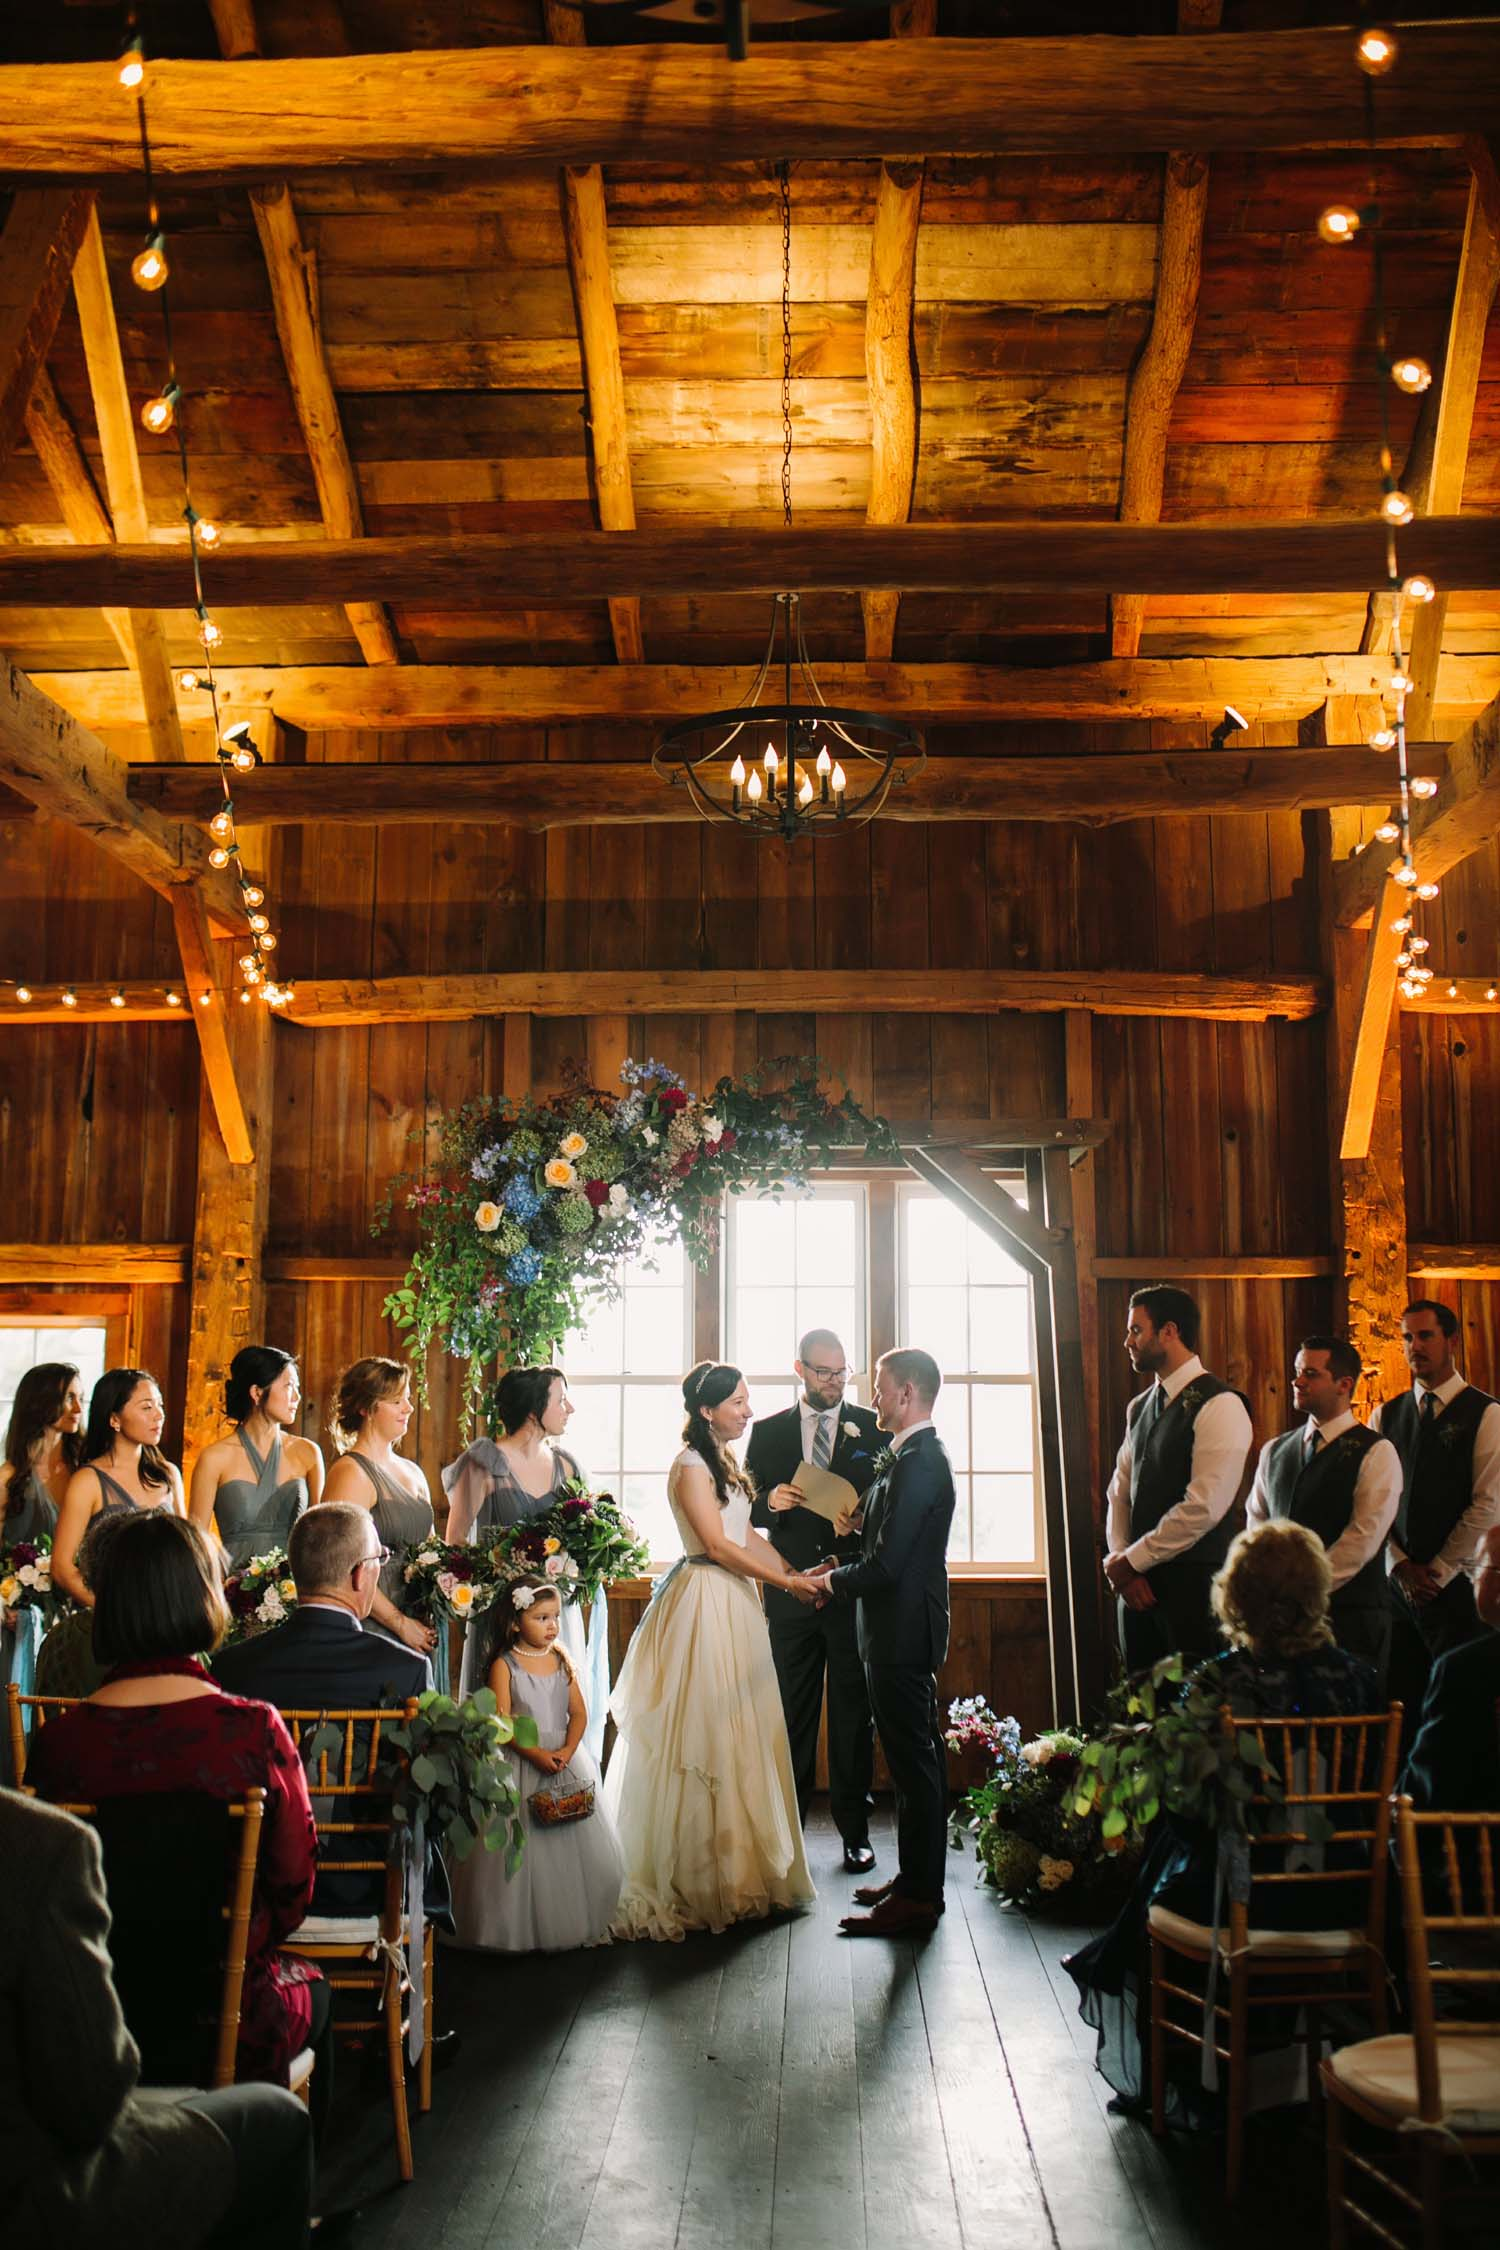 cornman farms indoor barn wedding ceremony